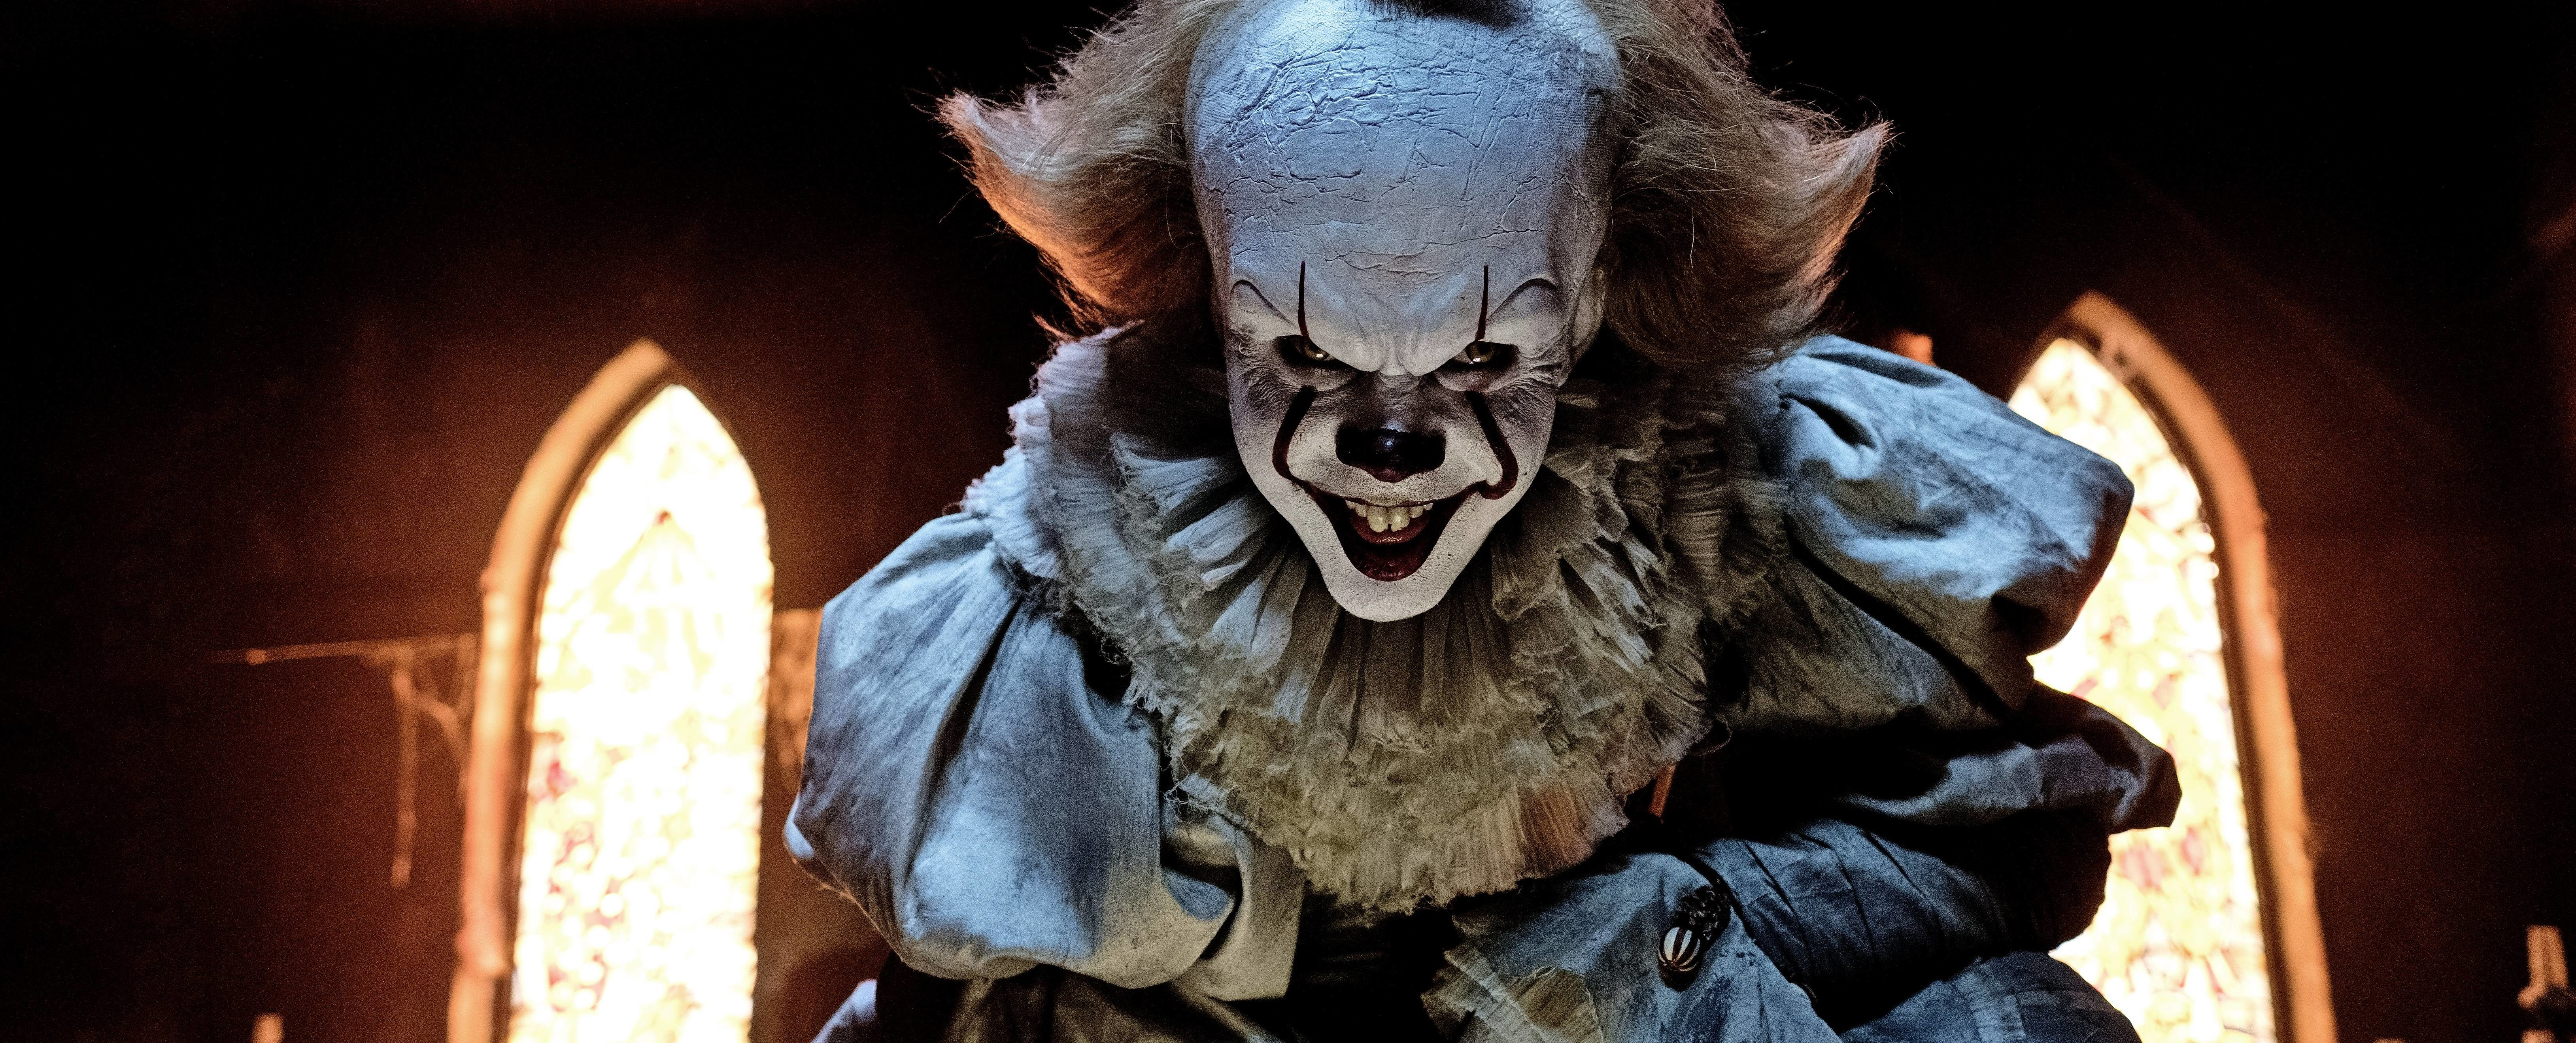 Wallpaper It Clown Bill Skarsgard Horror 2017 Hd: How The New Pennywise Mirror The Fears Of 2017